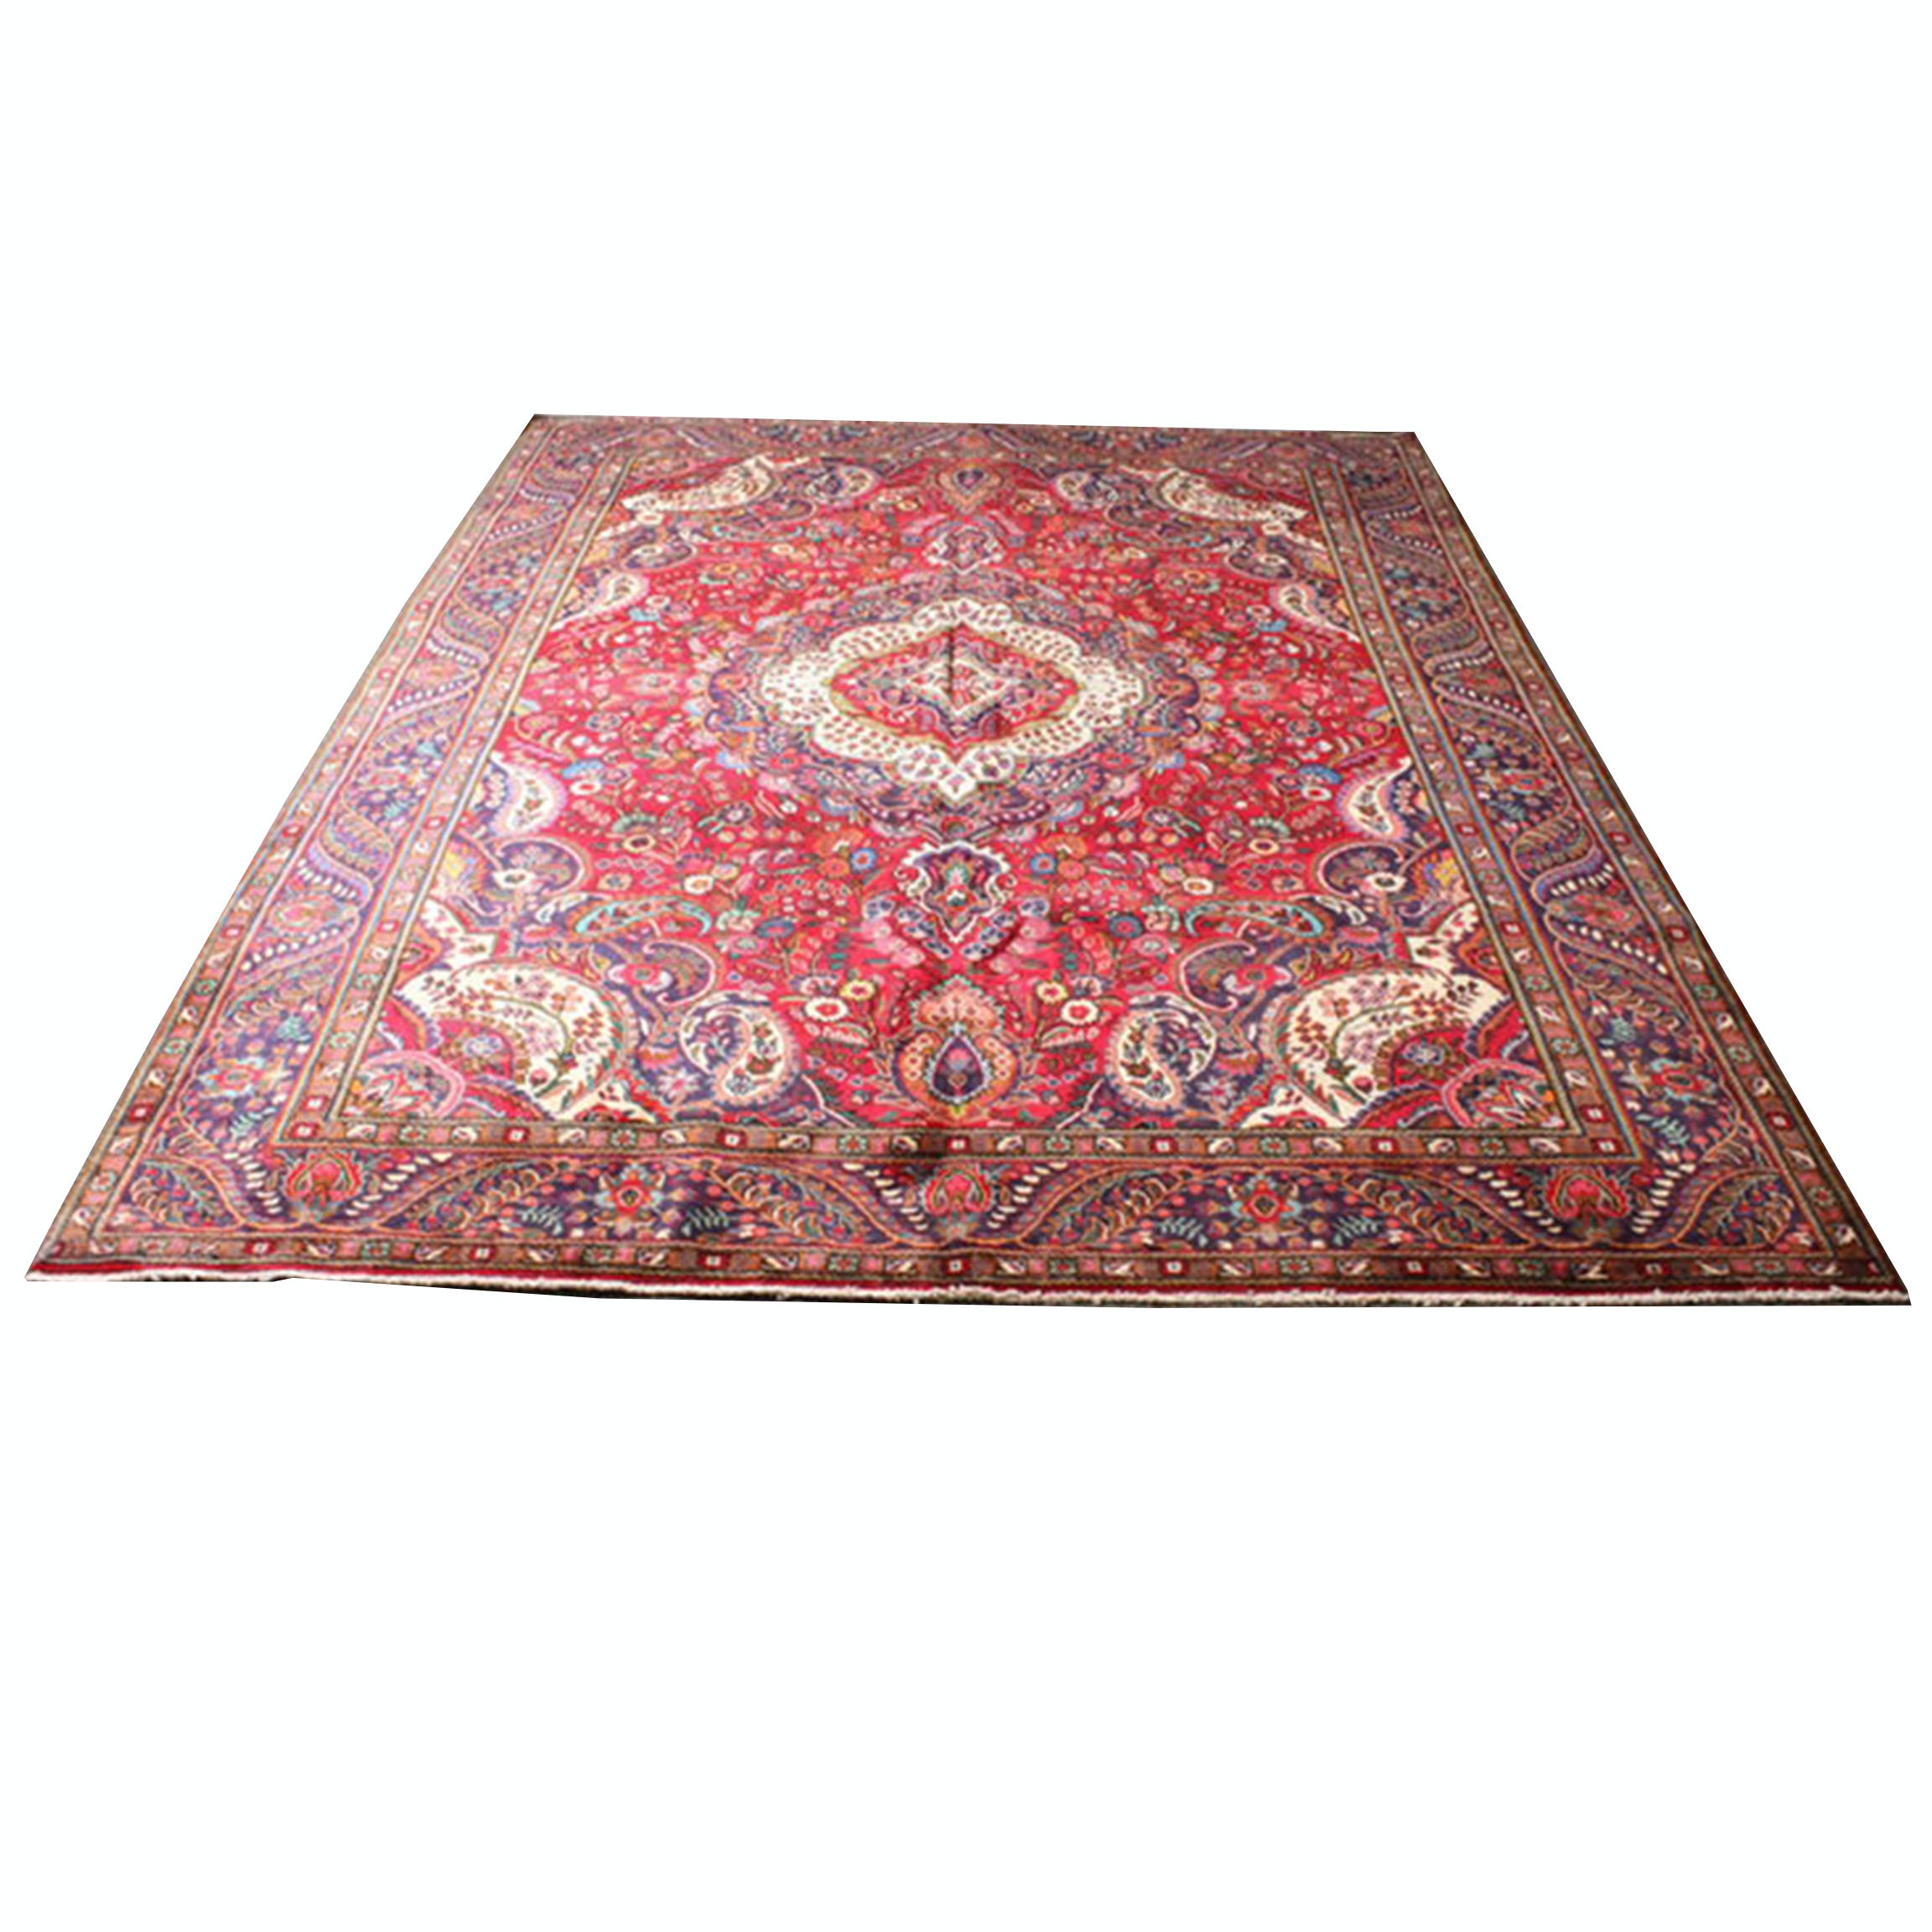 10' x 13' Semi-Antique Hand-Knotted Persian Tabriz Room Sized Rug